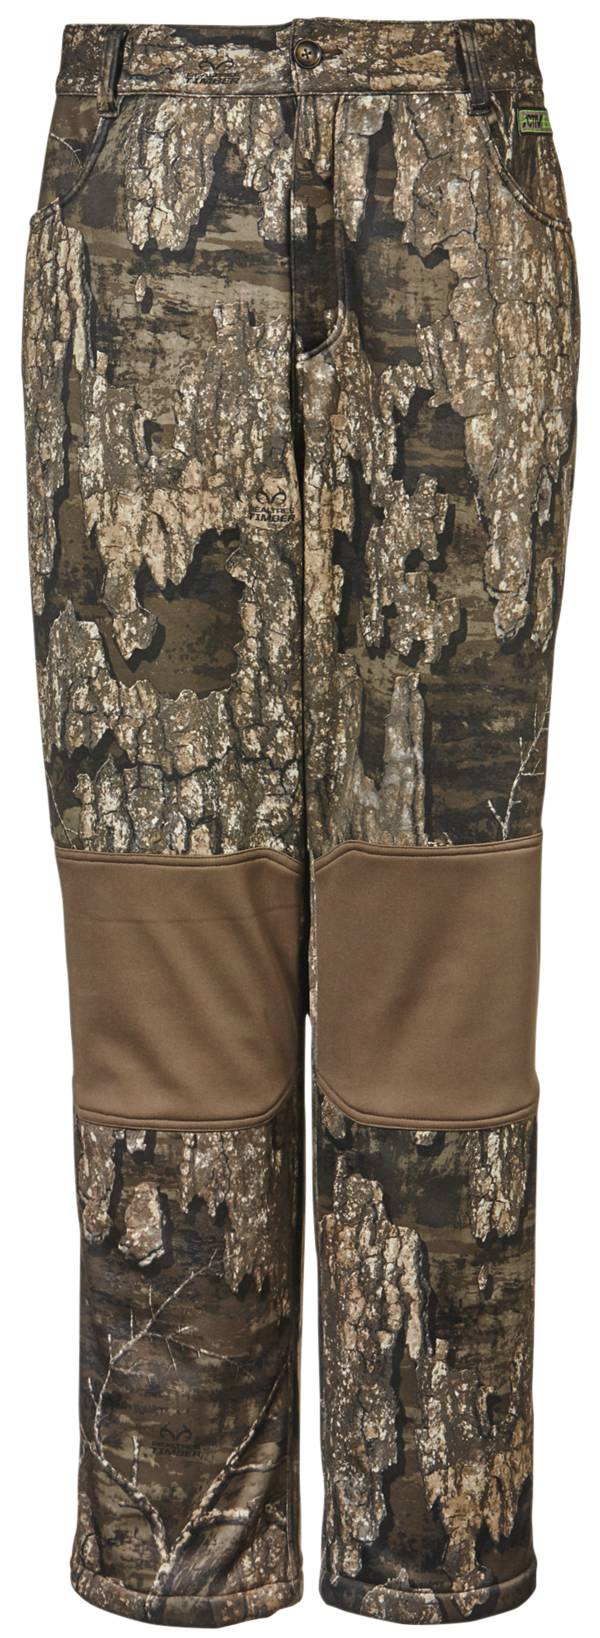 Drake Waterfowl Men's Non-Typical Endurance Hunting Pants product image